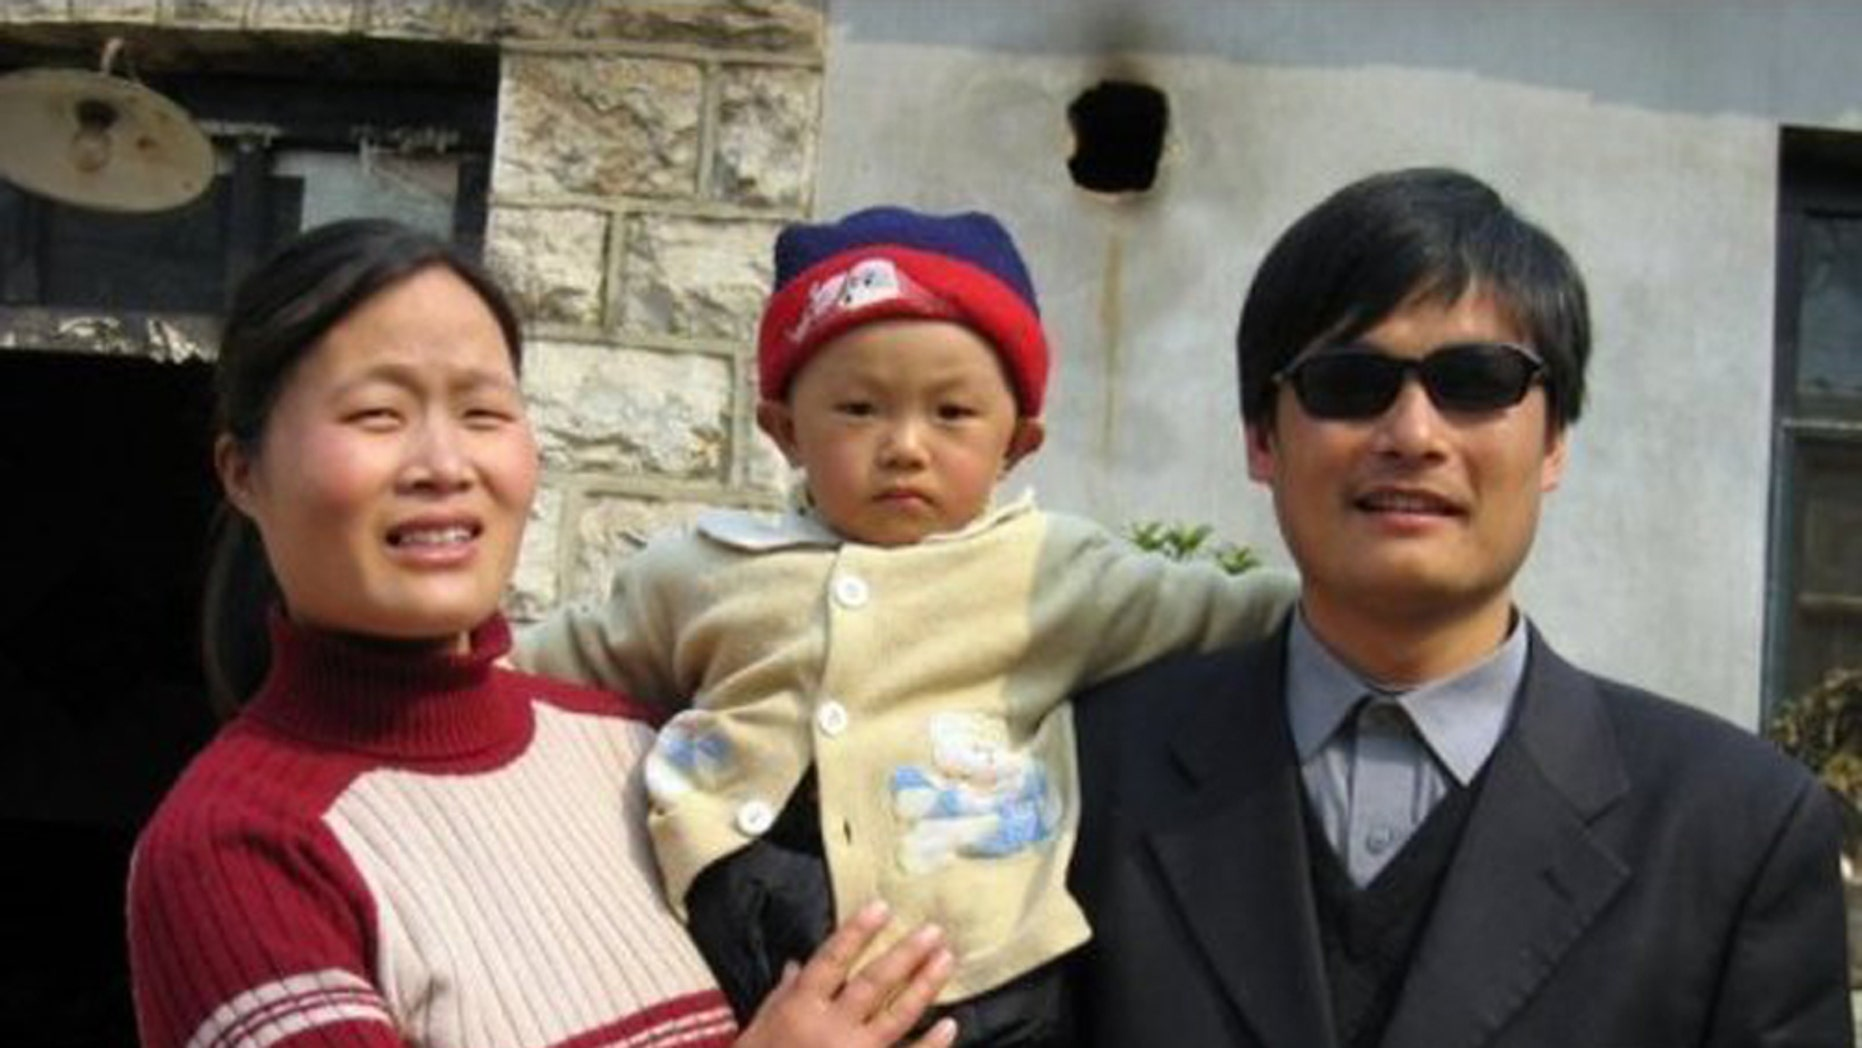 This undated photo provided by the China Aid Association shows blind Chinese legal activist Chen Guangchen, right, with his son, Chen Kerui, with his wife Yuan Weijing, left, in Shandong province, China.